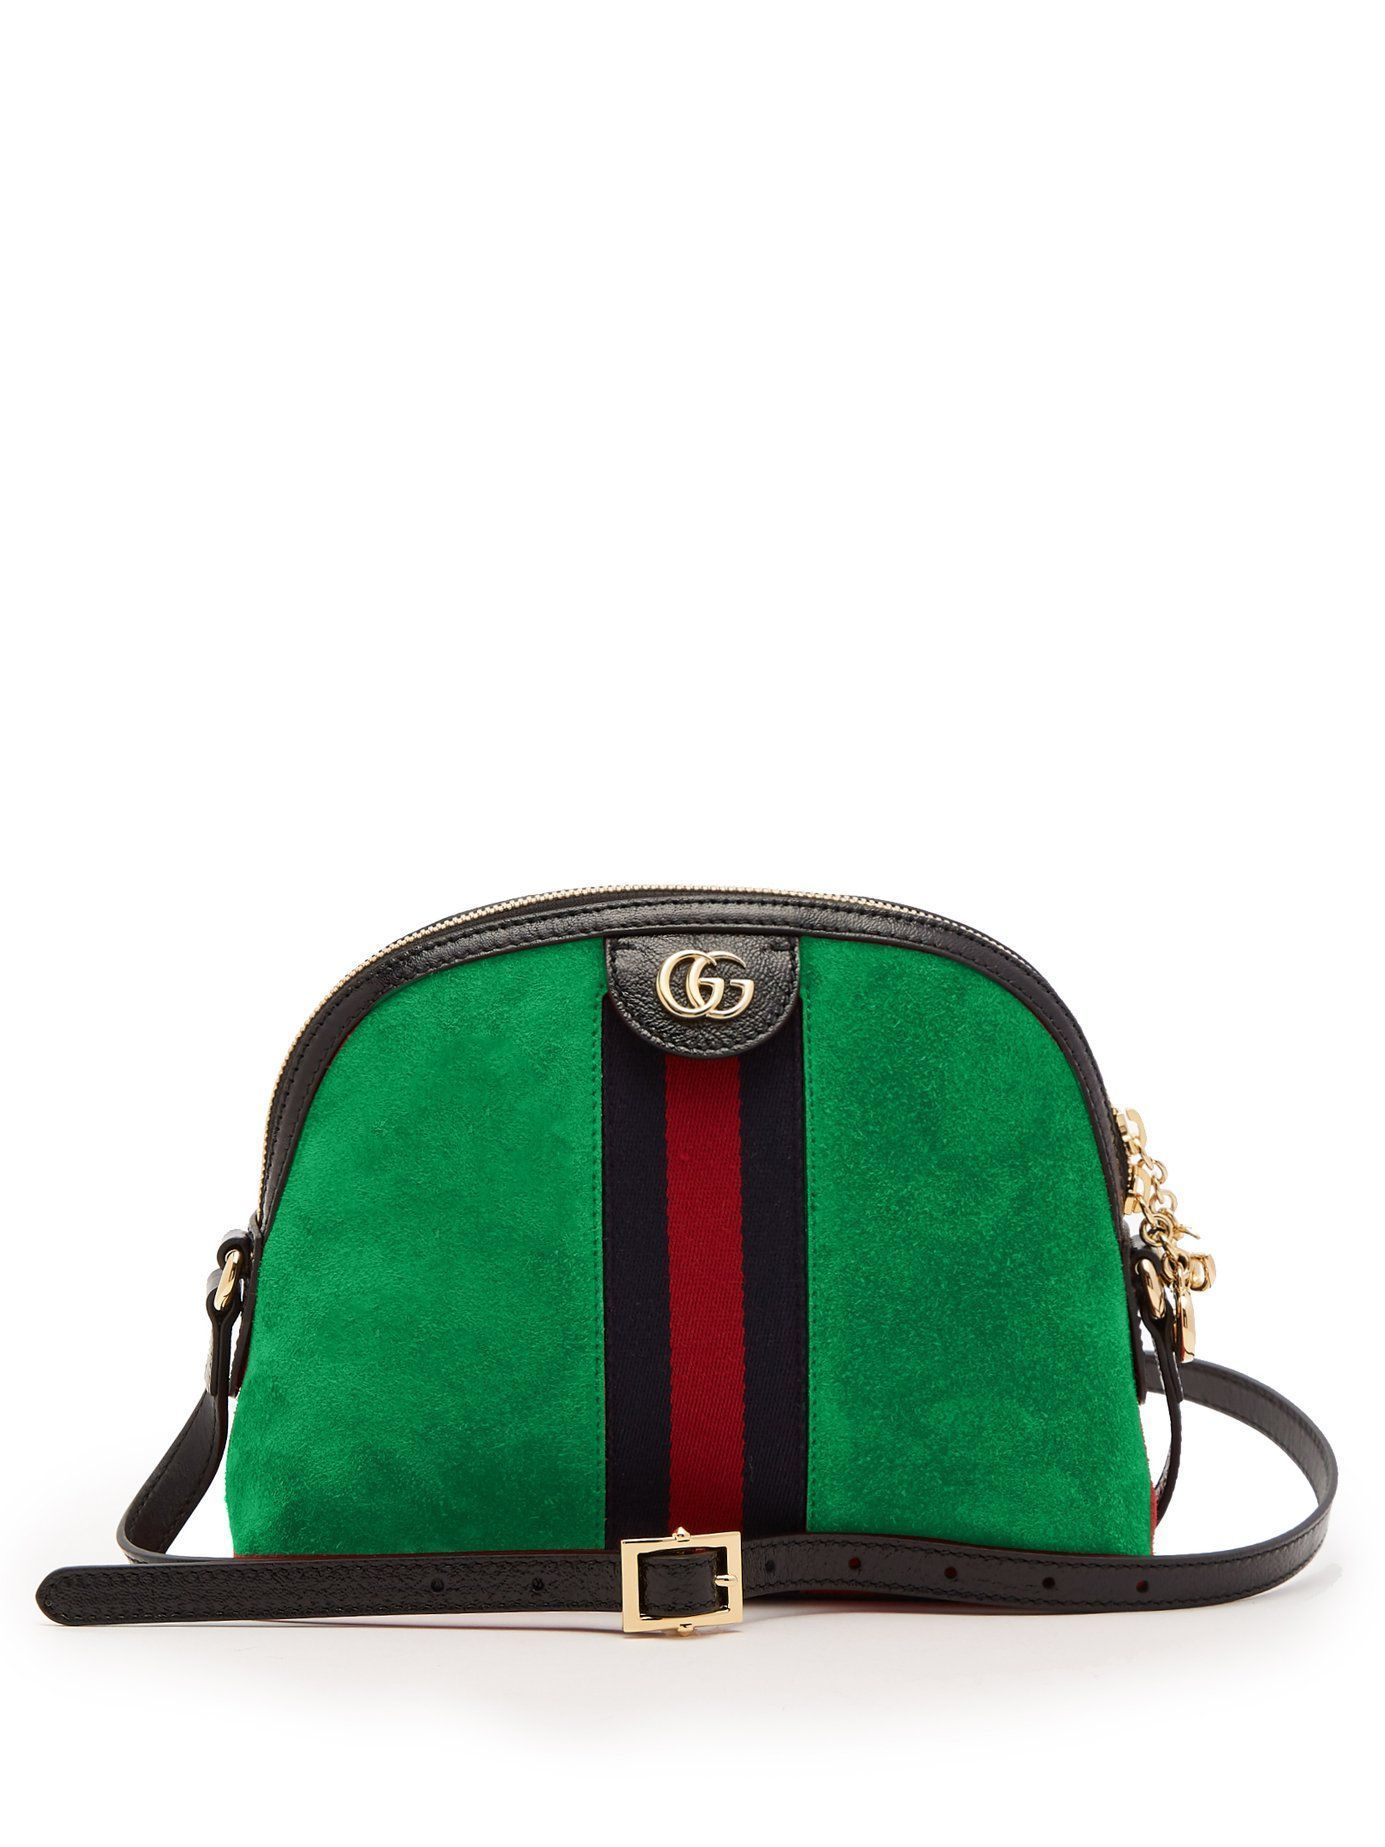 905dbcd993e Gucci Ophidia GG acid green suede cross-body bag